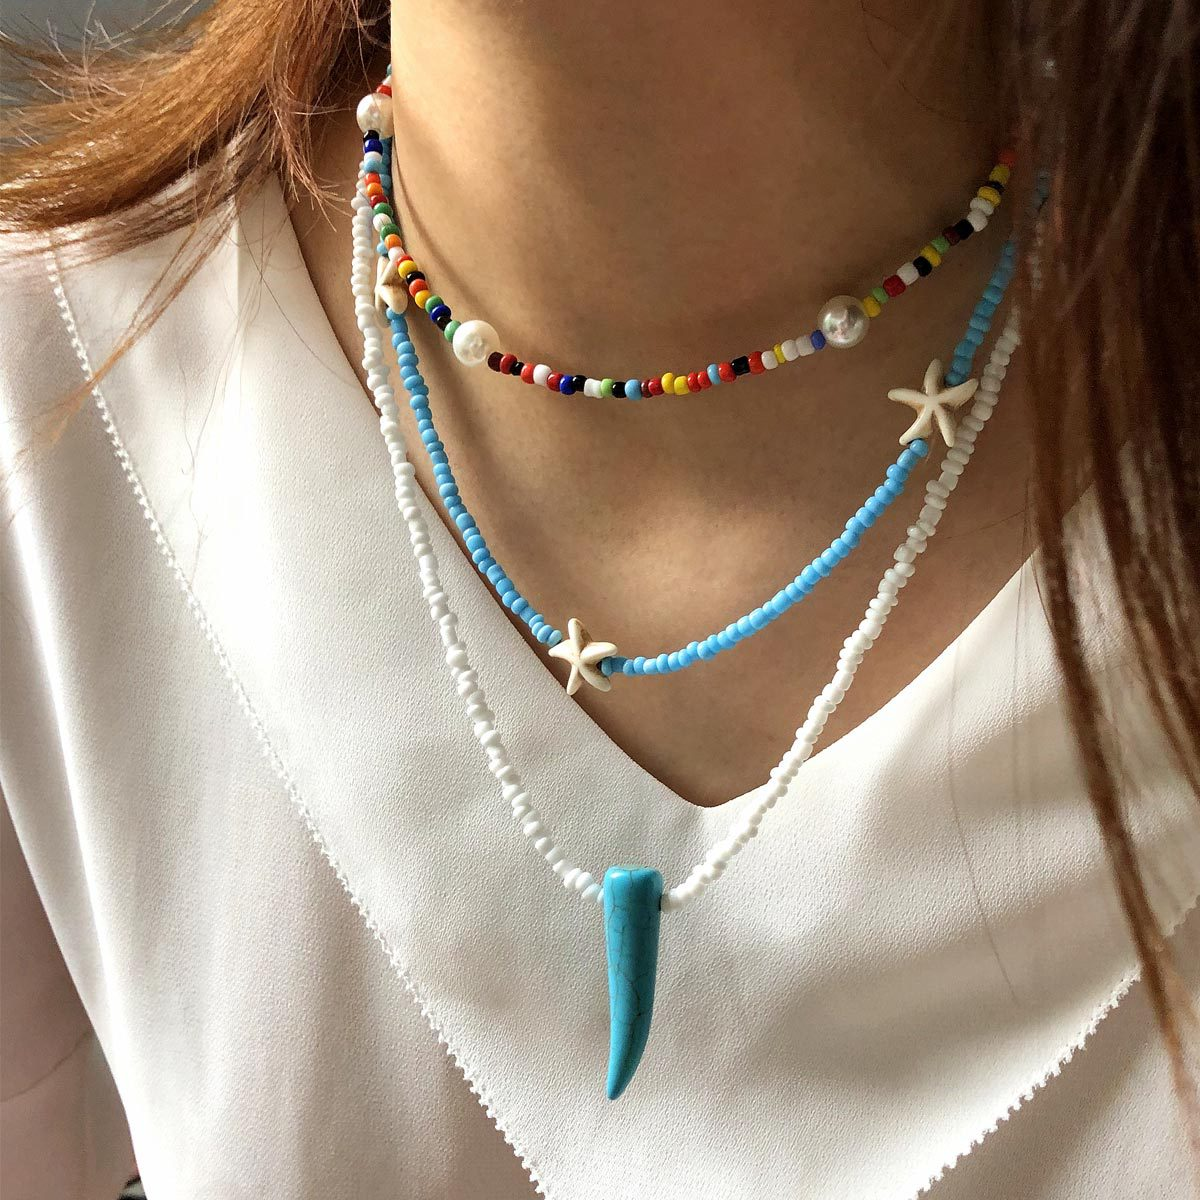 Women Necklace Rice Beads Pearl Multilayer Necklace Bohemian Choker Clavicle Chain Hand Made Necklace for Women Jewelry